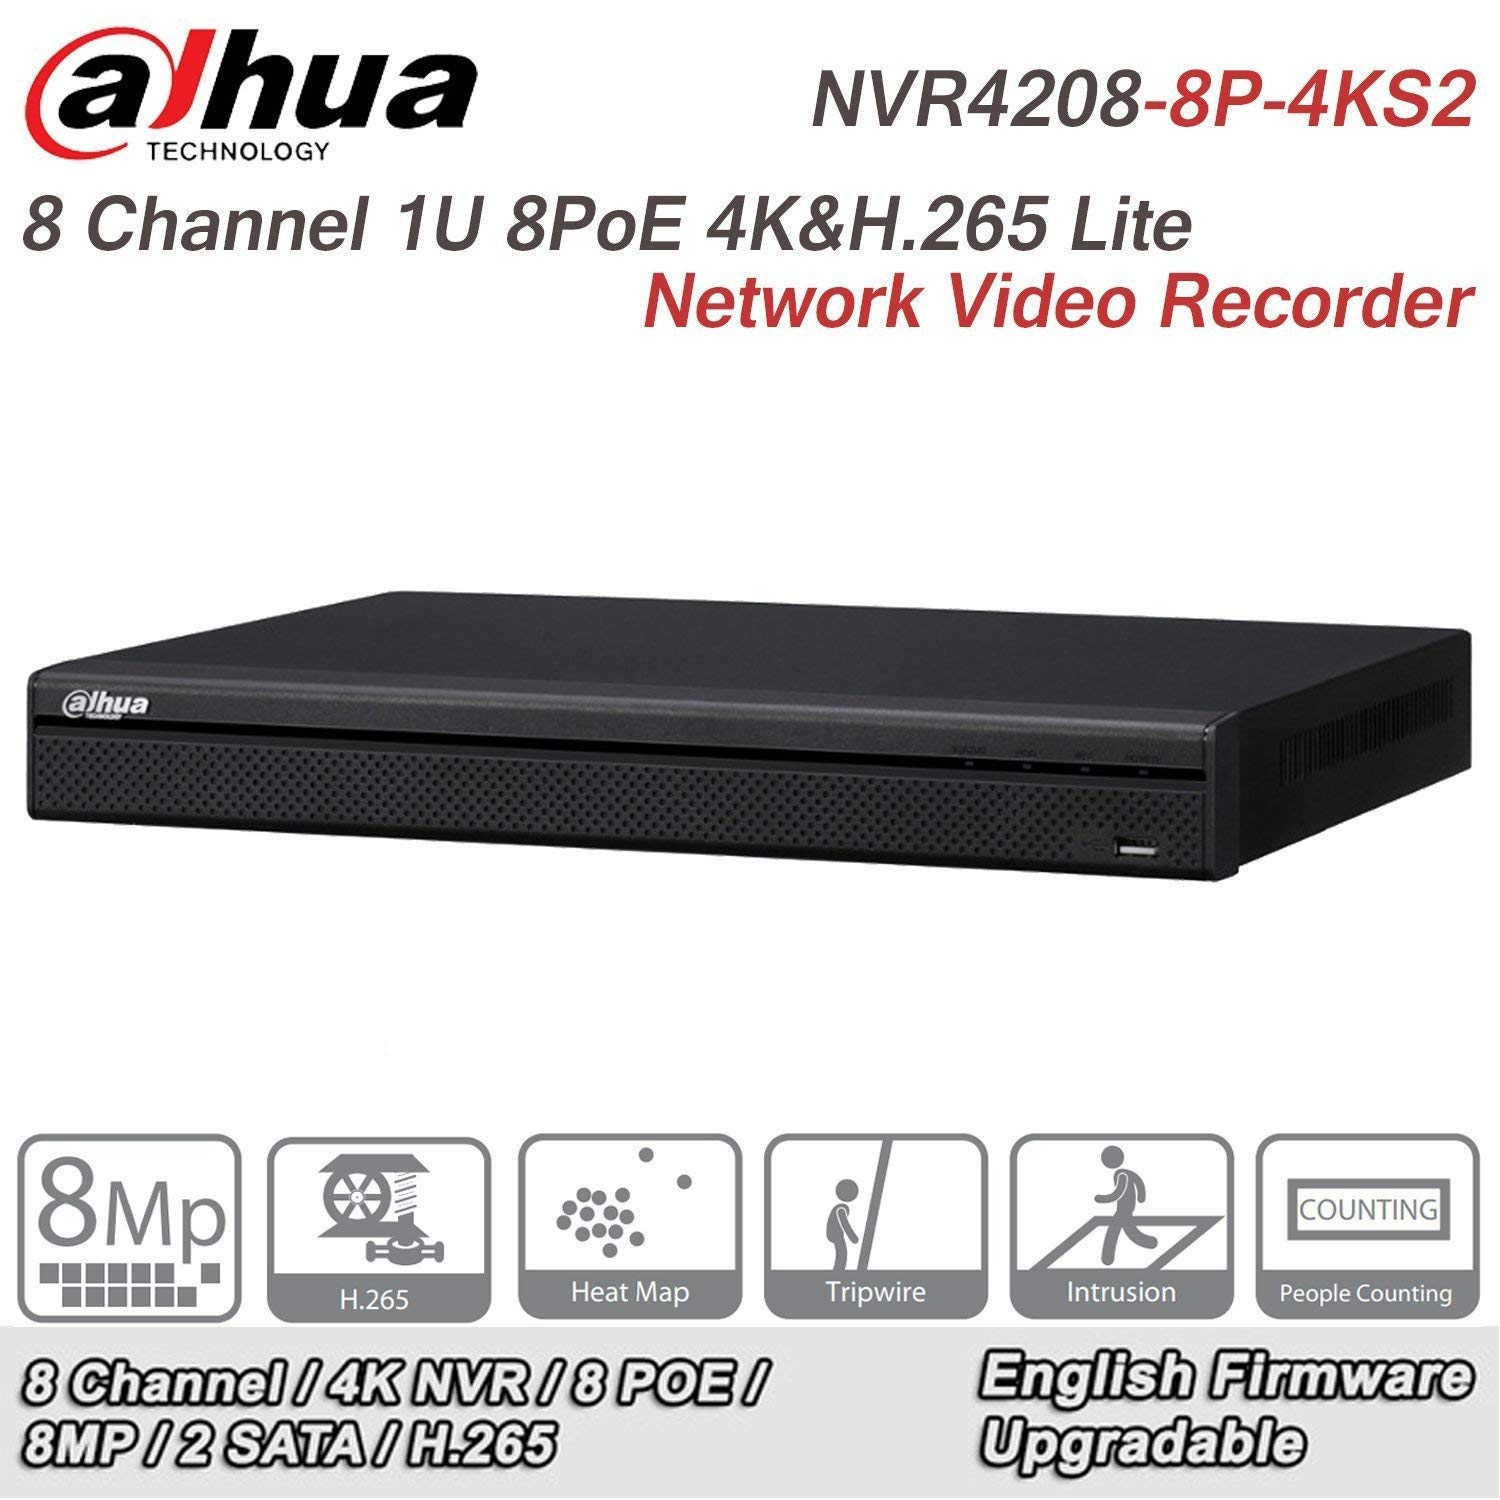 Dahua 8 Channel NVR DHI-NVR4208-8P-4KS2 1U 8PoE 4K H.265 Lite Network Video Recorder Original English Version by Hansen